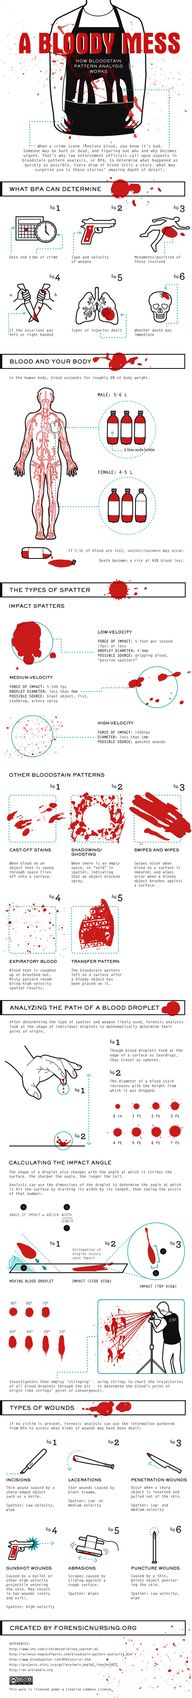 How Bloodstain Patte